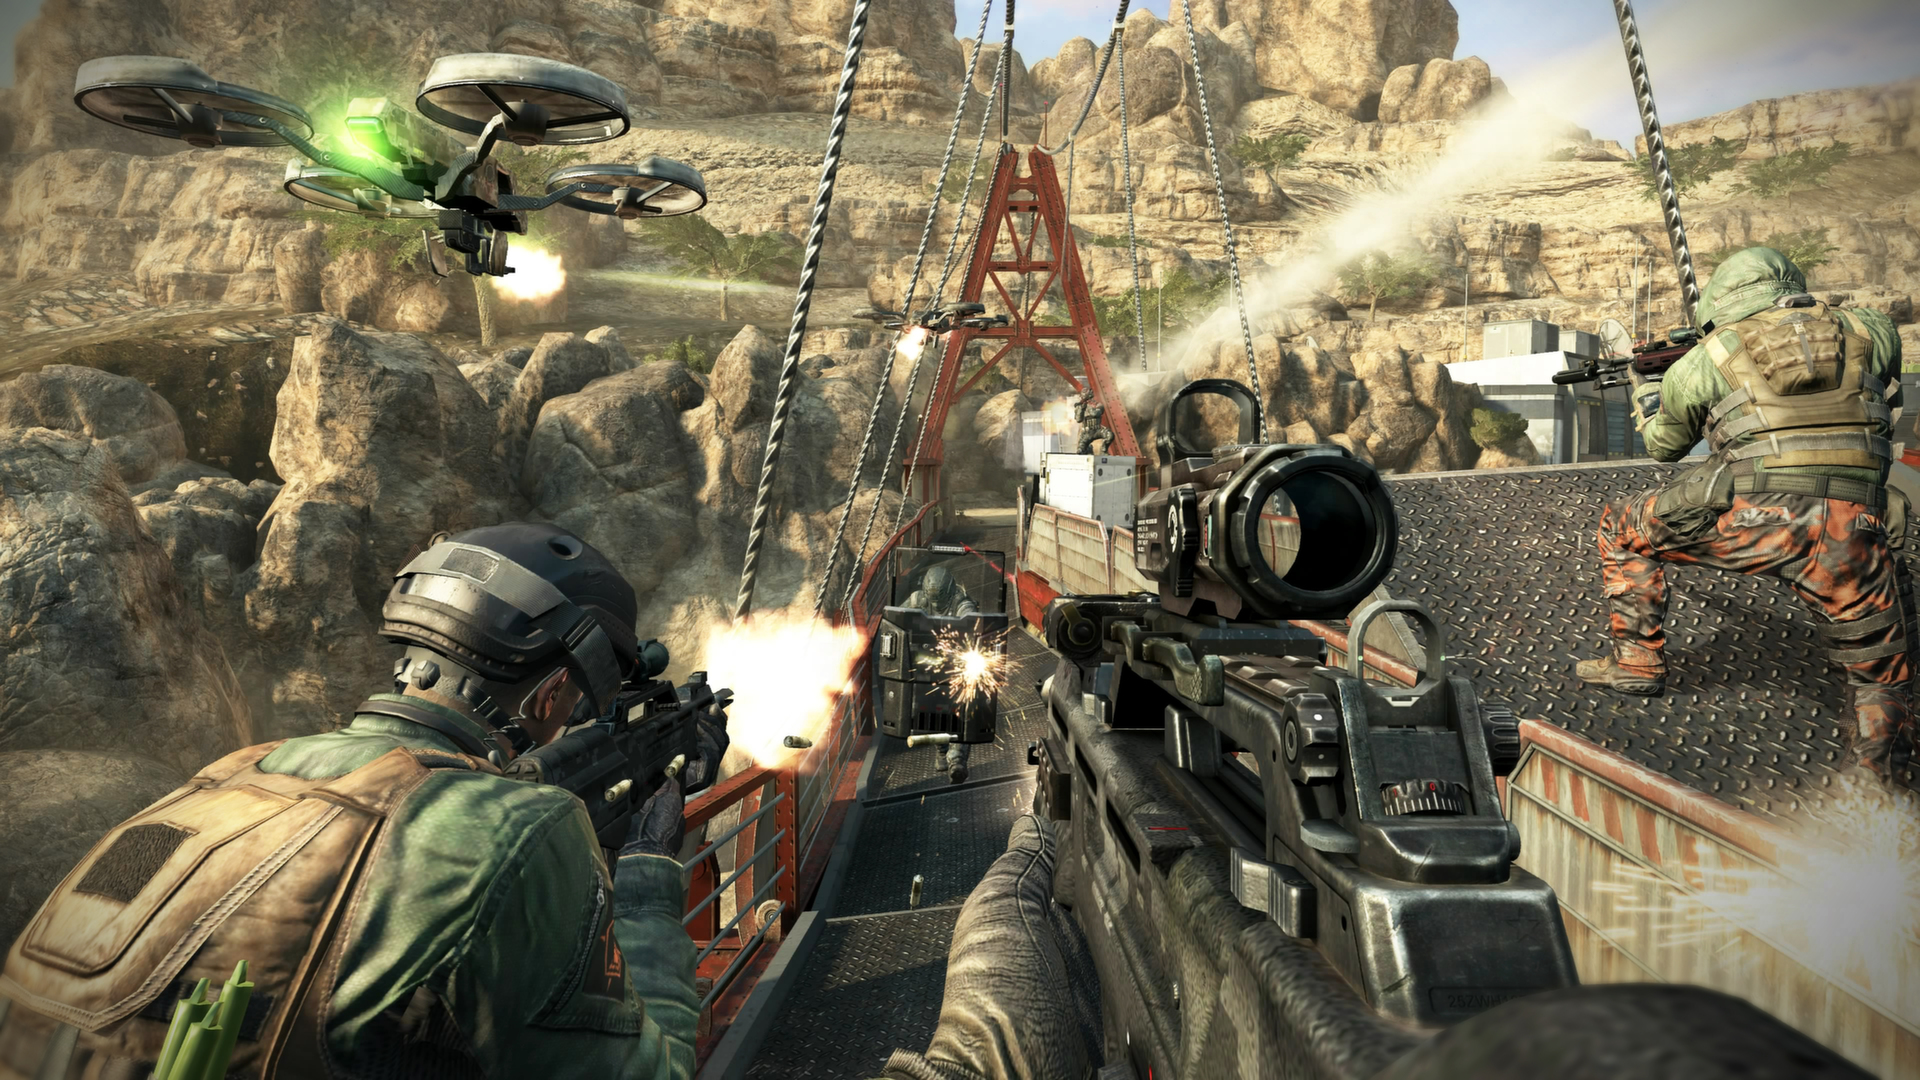 Call Of Duty Black Ops 2 System Requirements Can I Run It Pcgamebenchmark